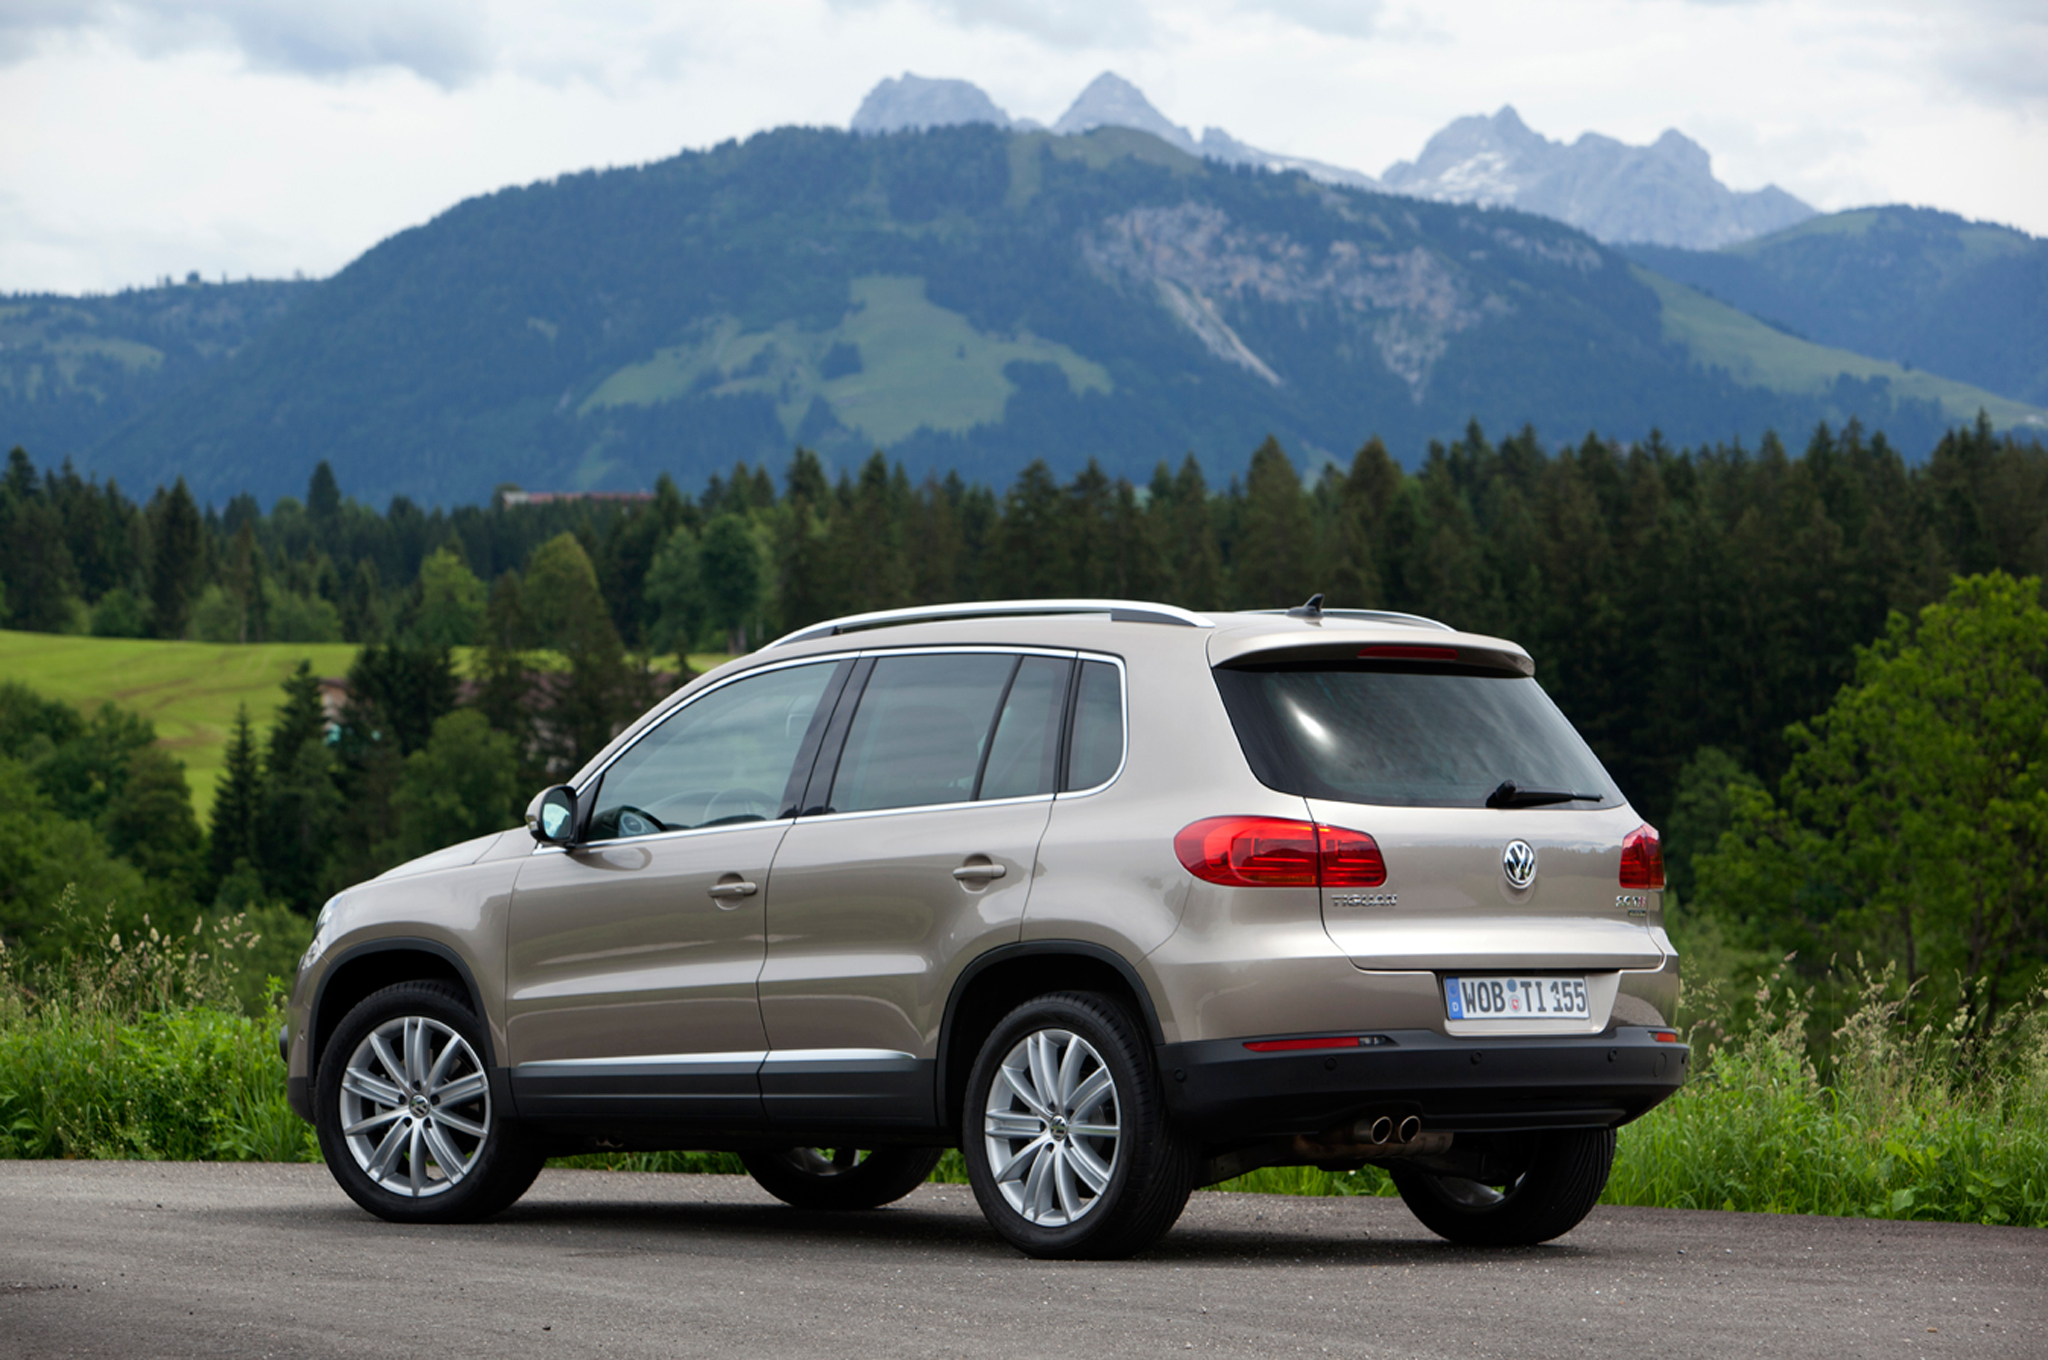 Tiguan had just slight lean in turns and was easy to park with its small turning radius vw2